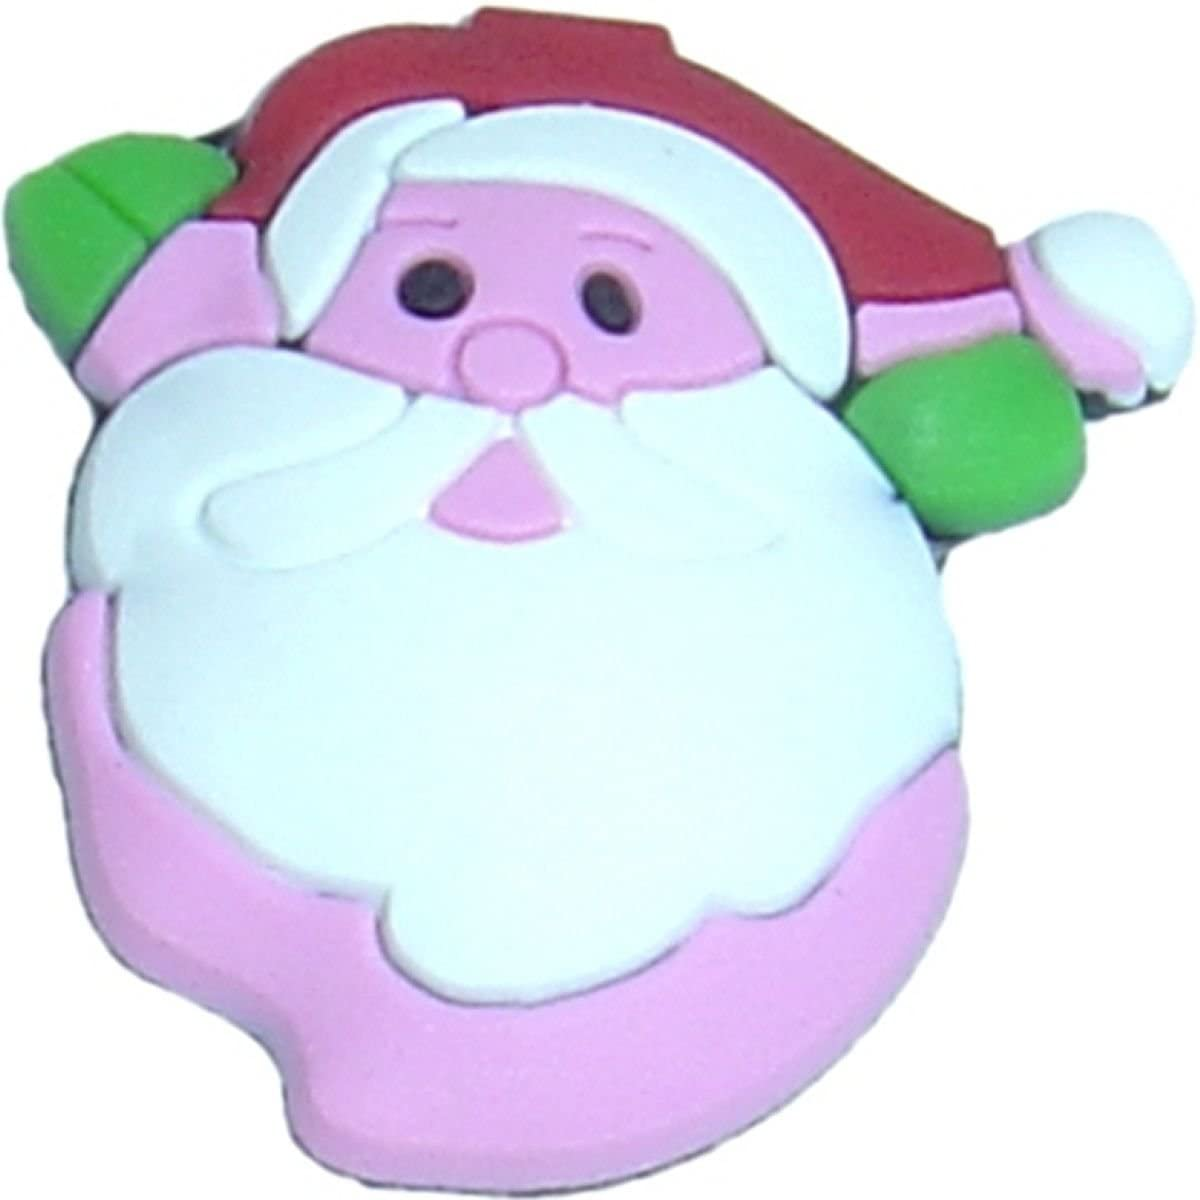 Santa on Pink Rubber Charm for Wristbands and Shoes